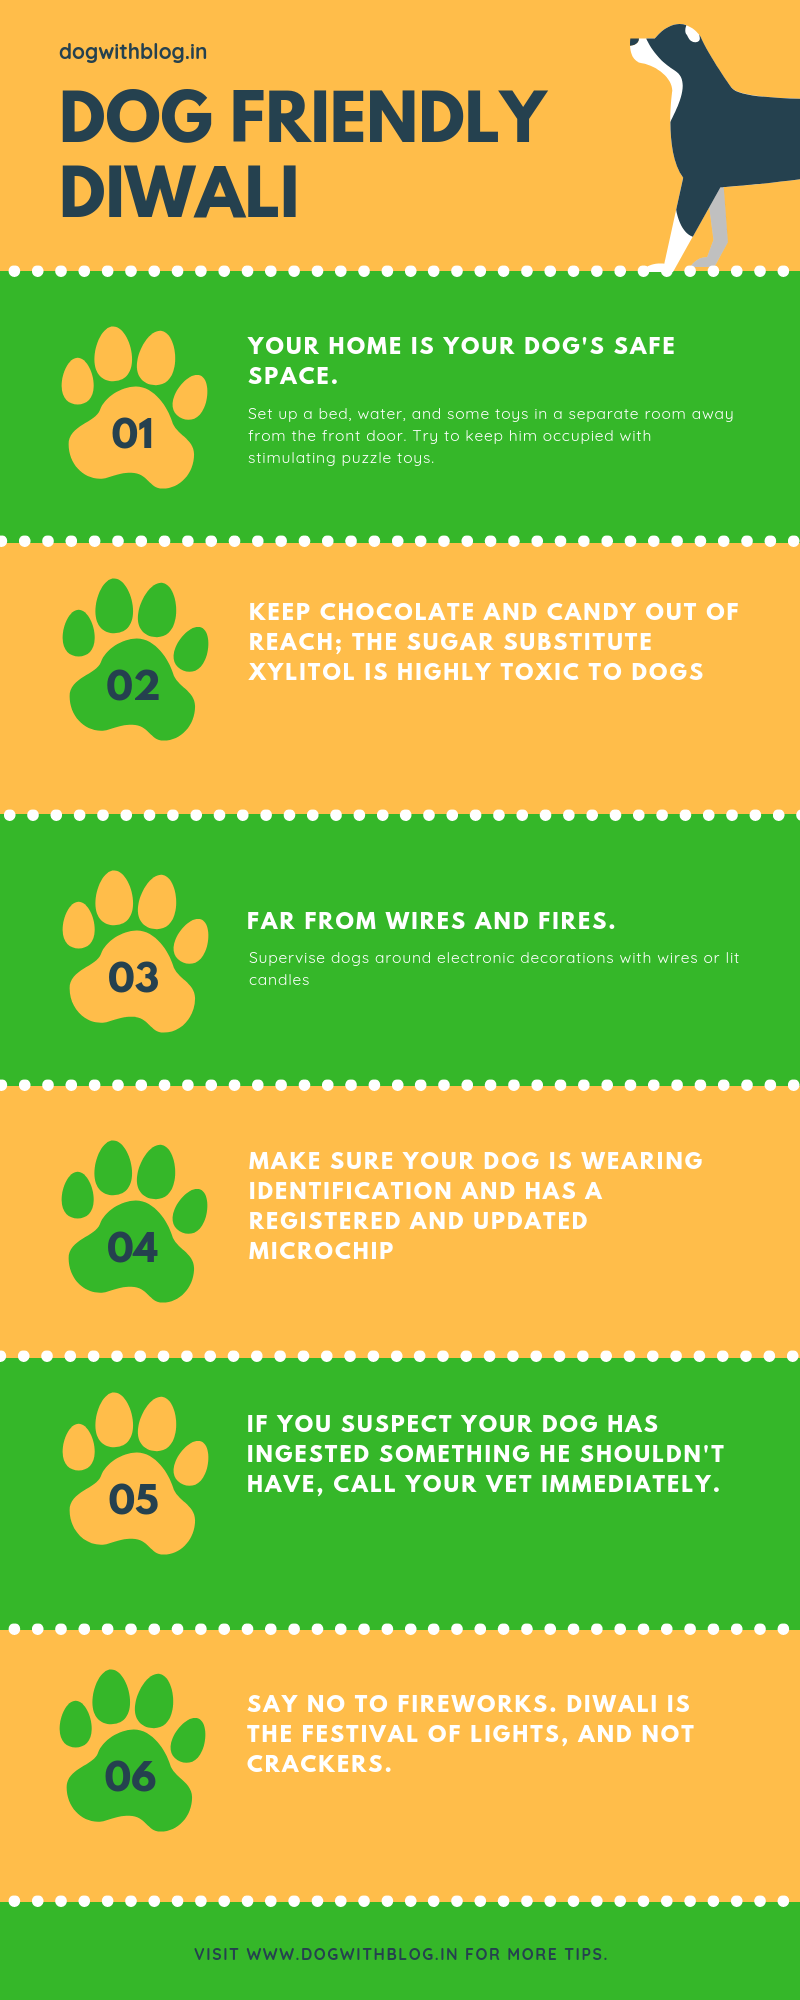 help dogs Diwali infographic